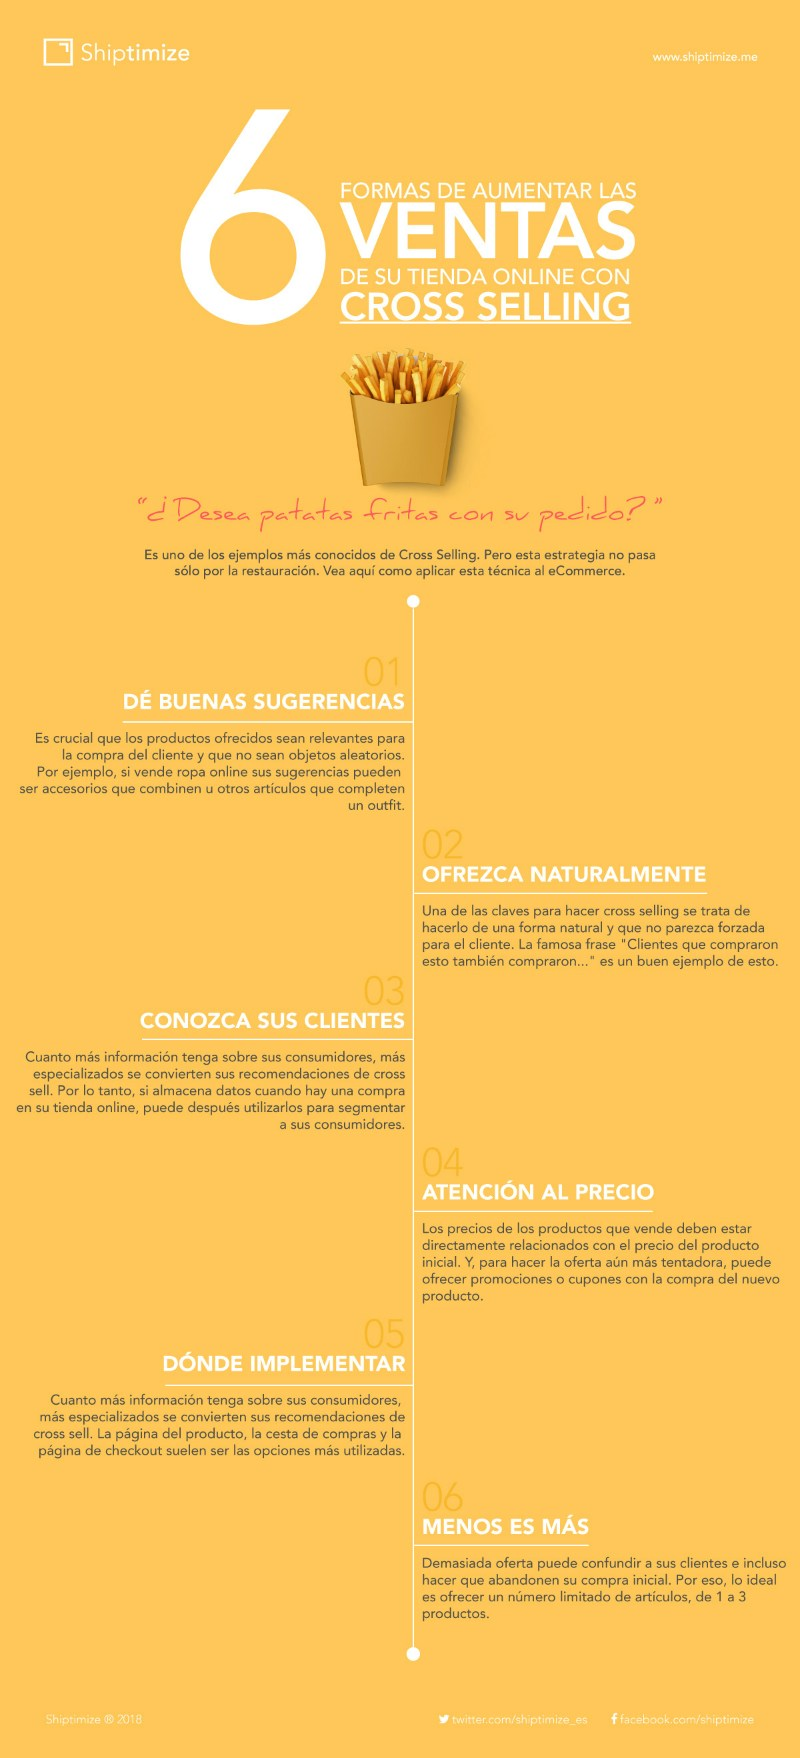 6 formas de aumentar las ventas de tu tienda online con Cross Selling #infografia #marketing